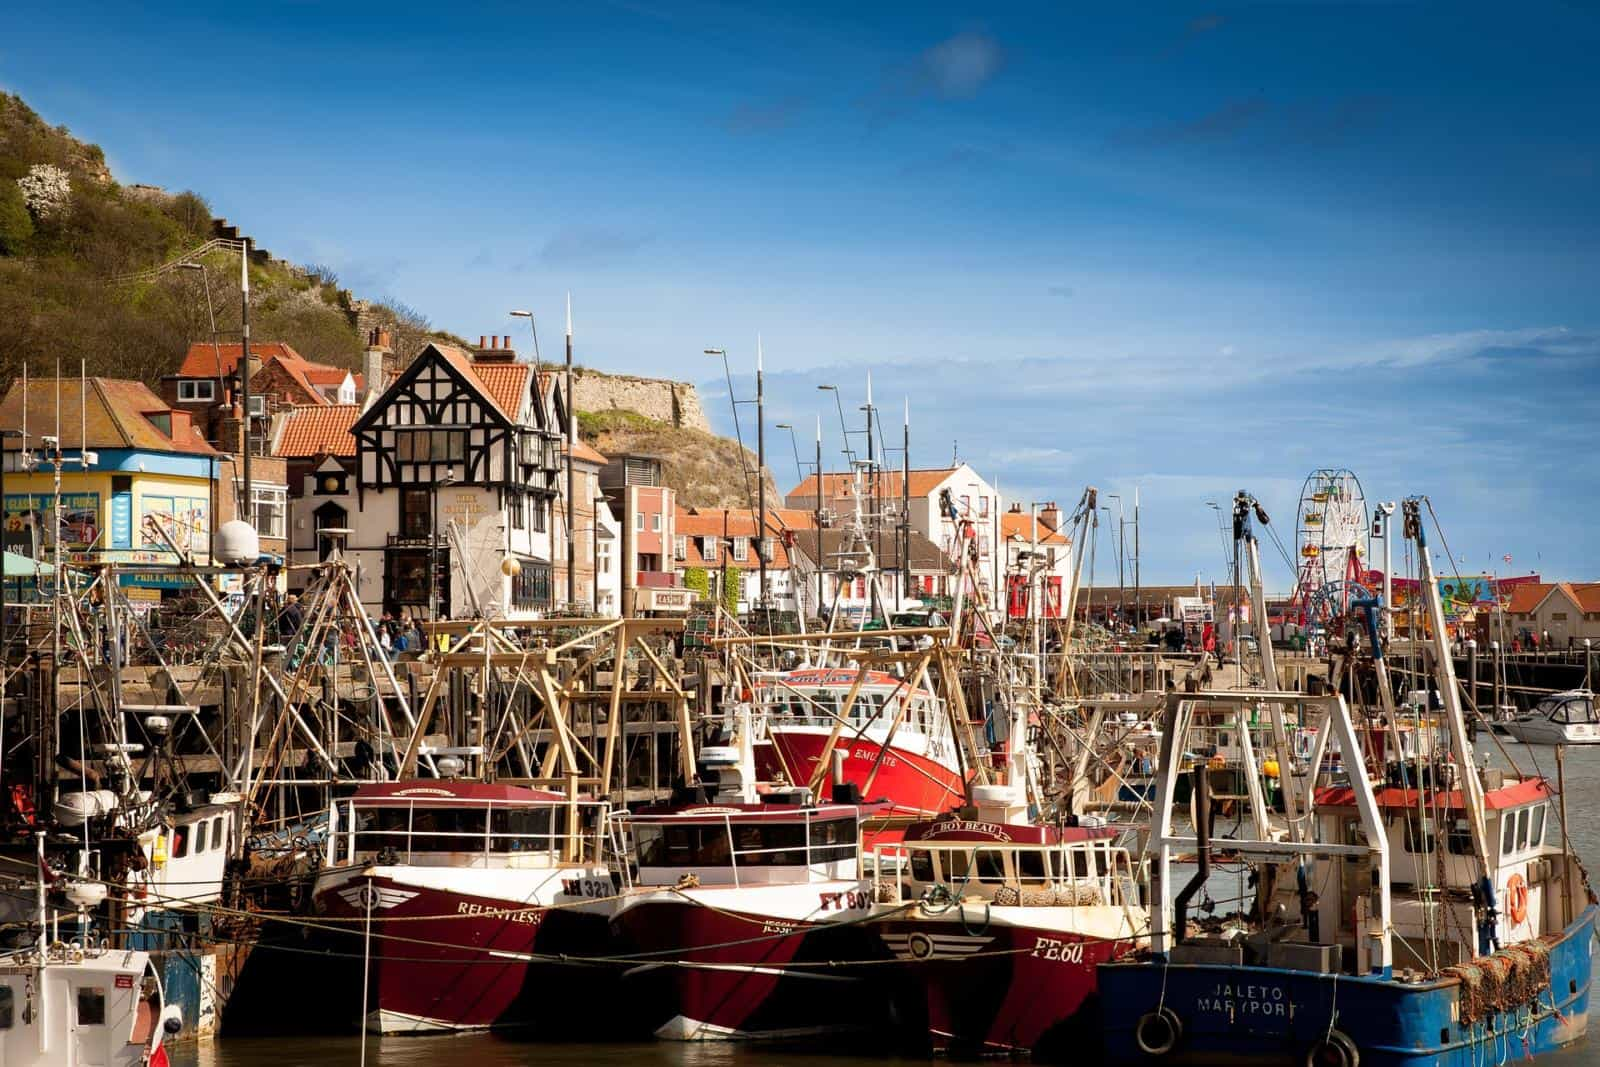 Best Day Trip for York - Scarborough - Pixabay